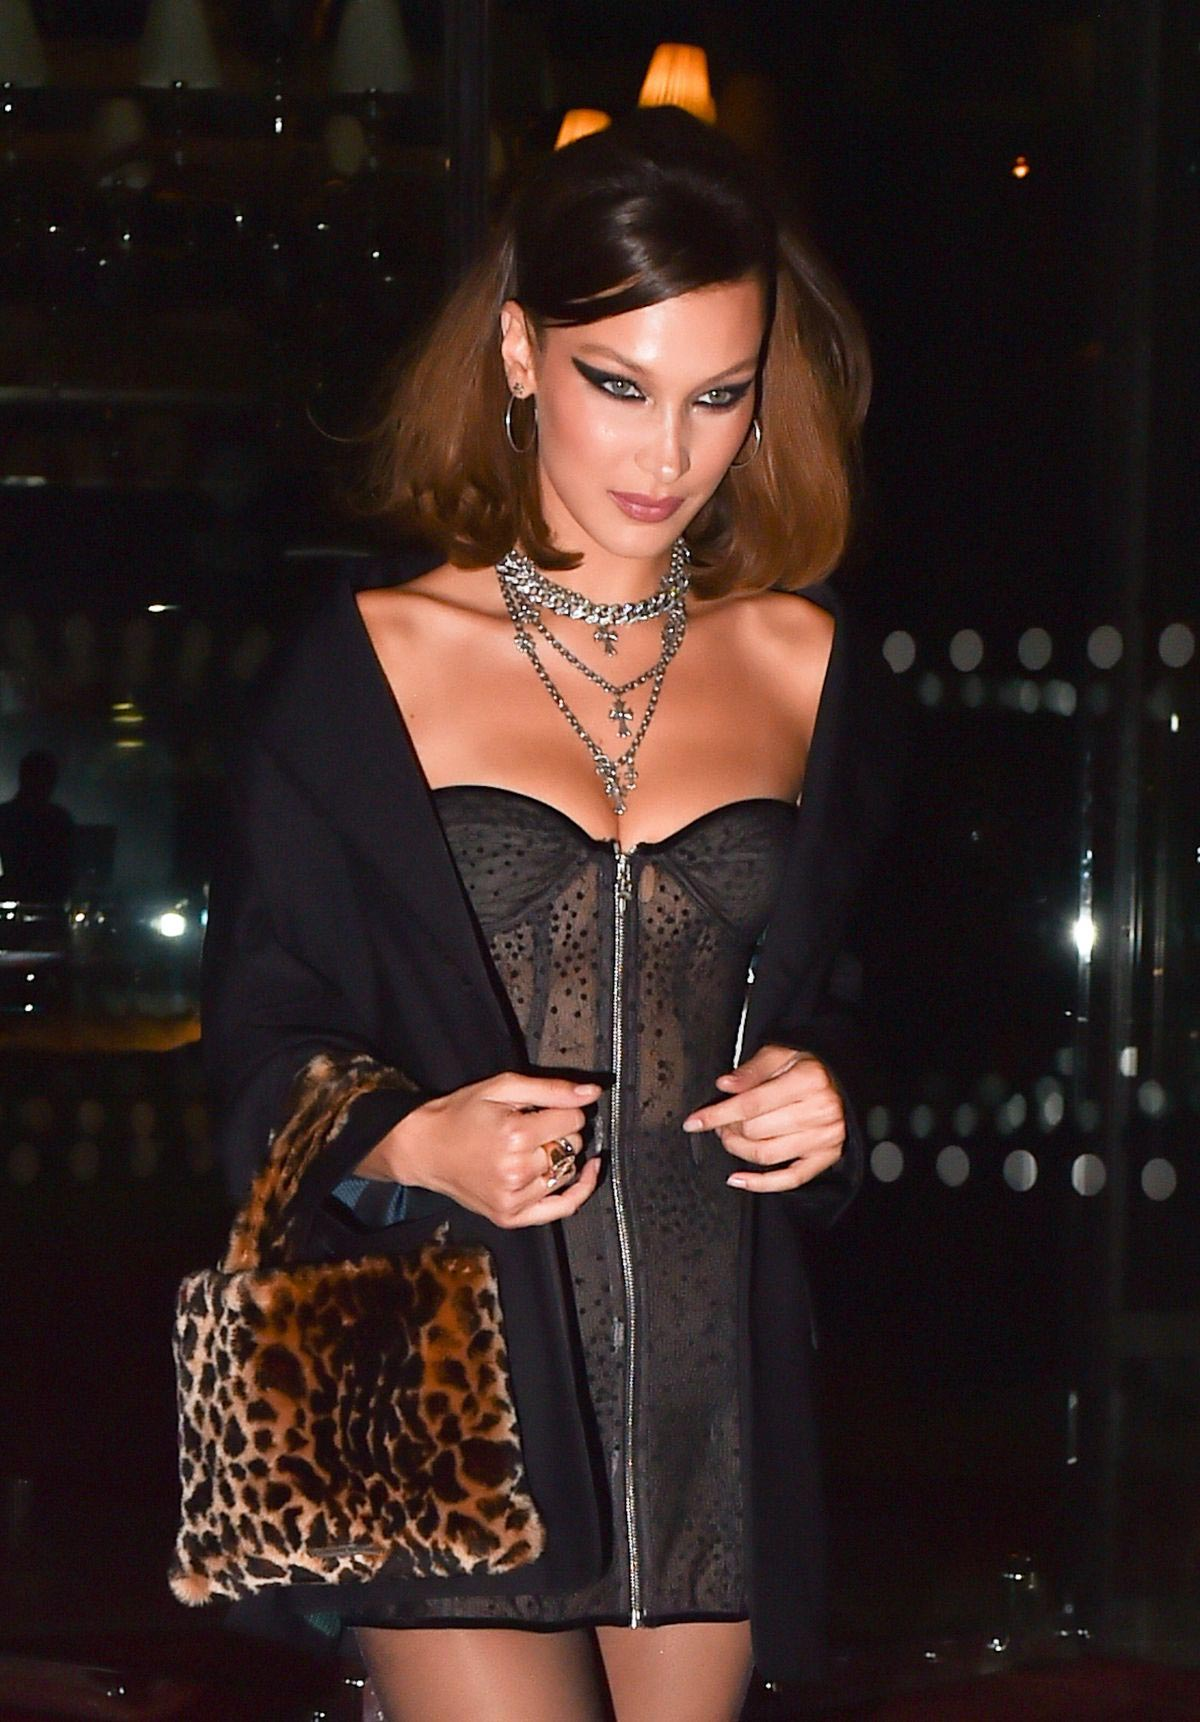 f7524aa4a47 Bella Hadid Arrives at Chrome Hearts Event in Paris 2018 09 25 ...